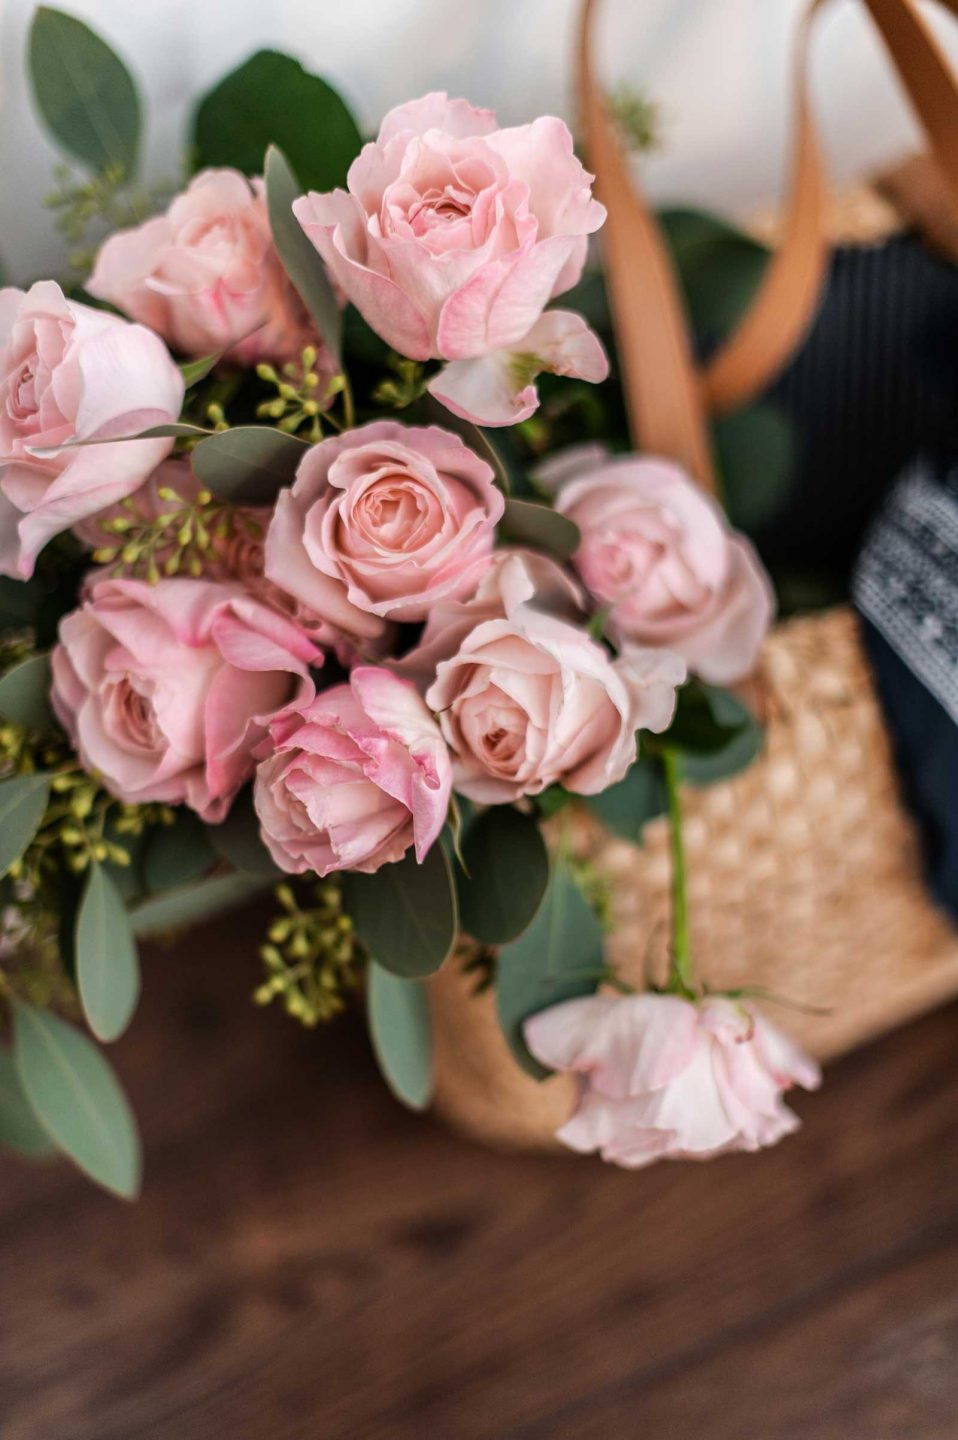 Bouquet of roses in a bag